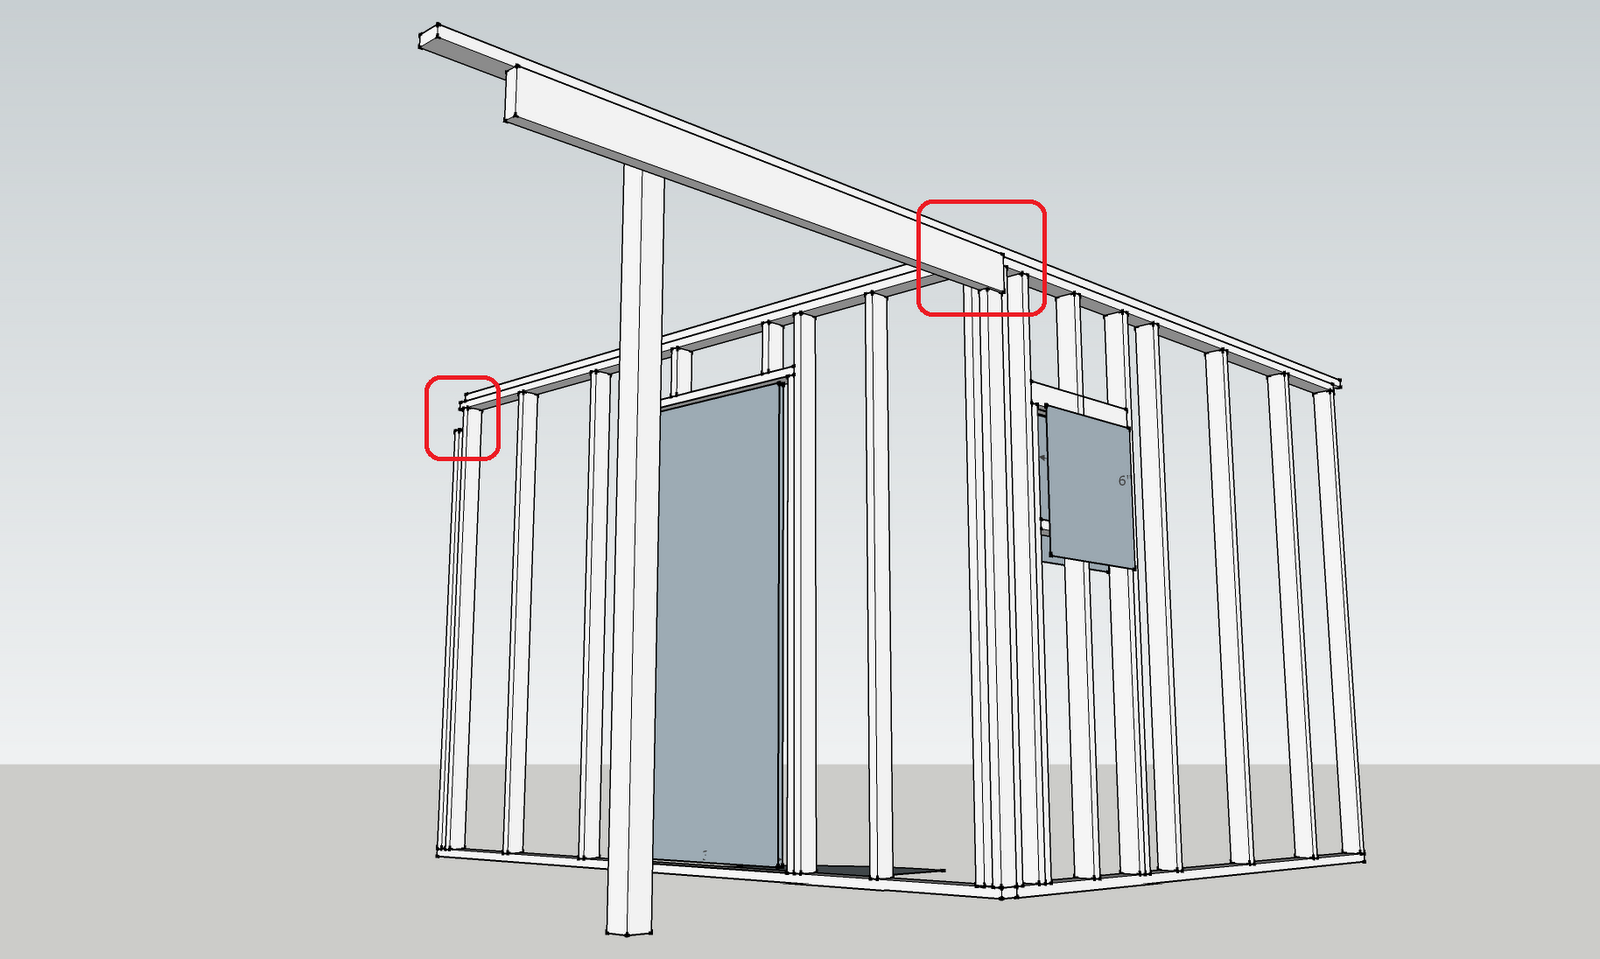 Jay builds a house: Top plates & porch beam